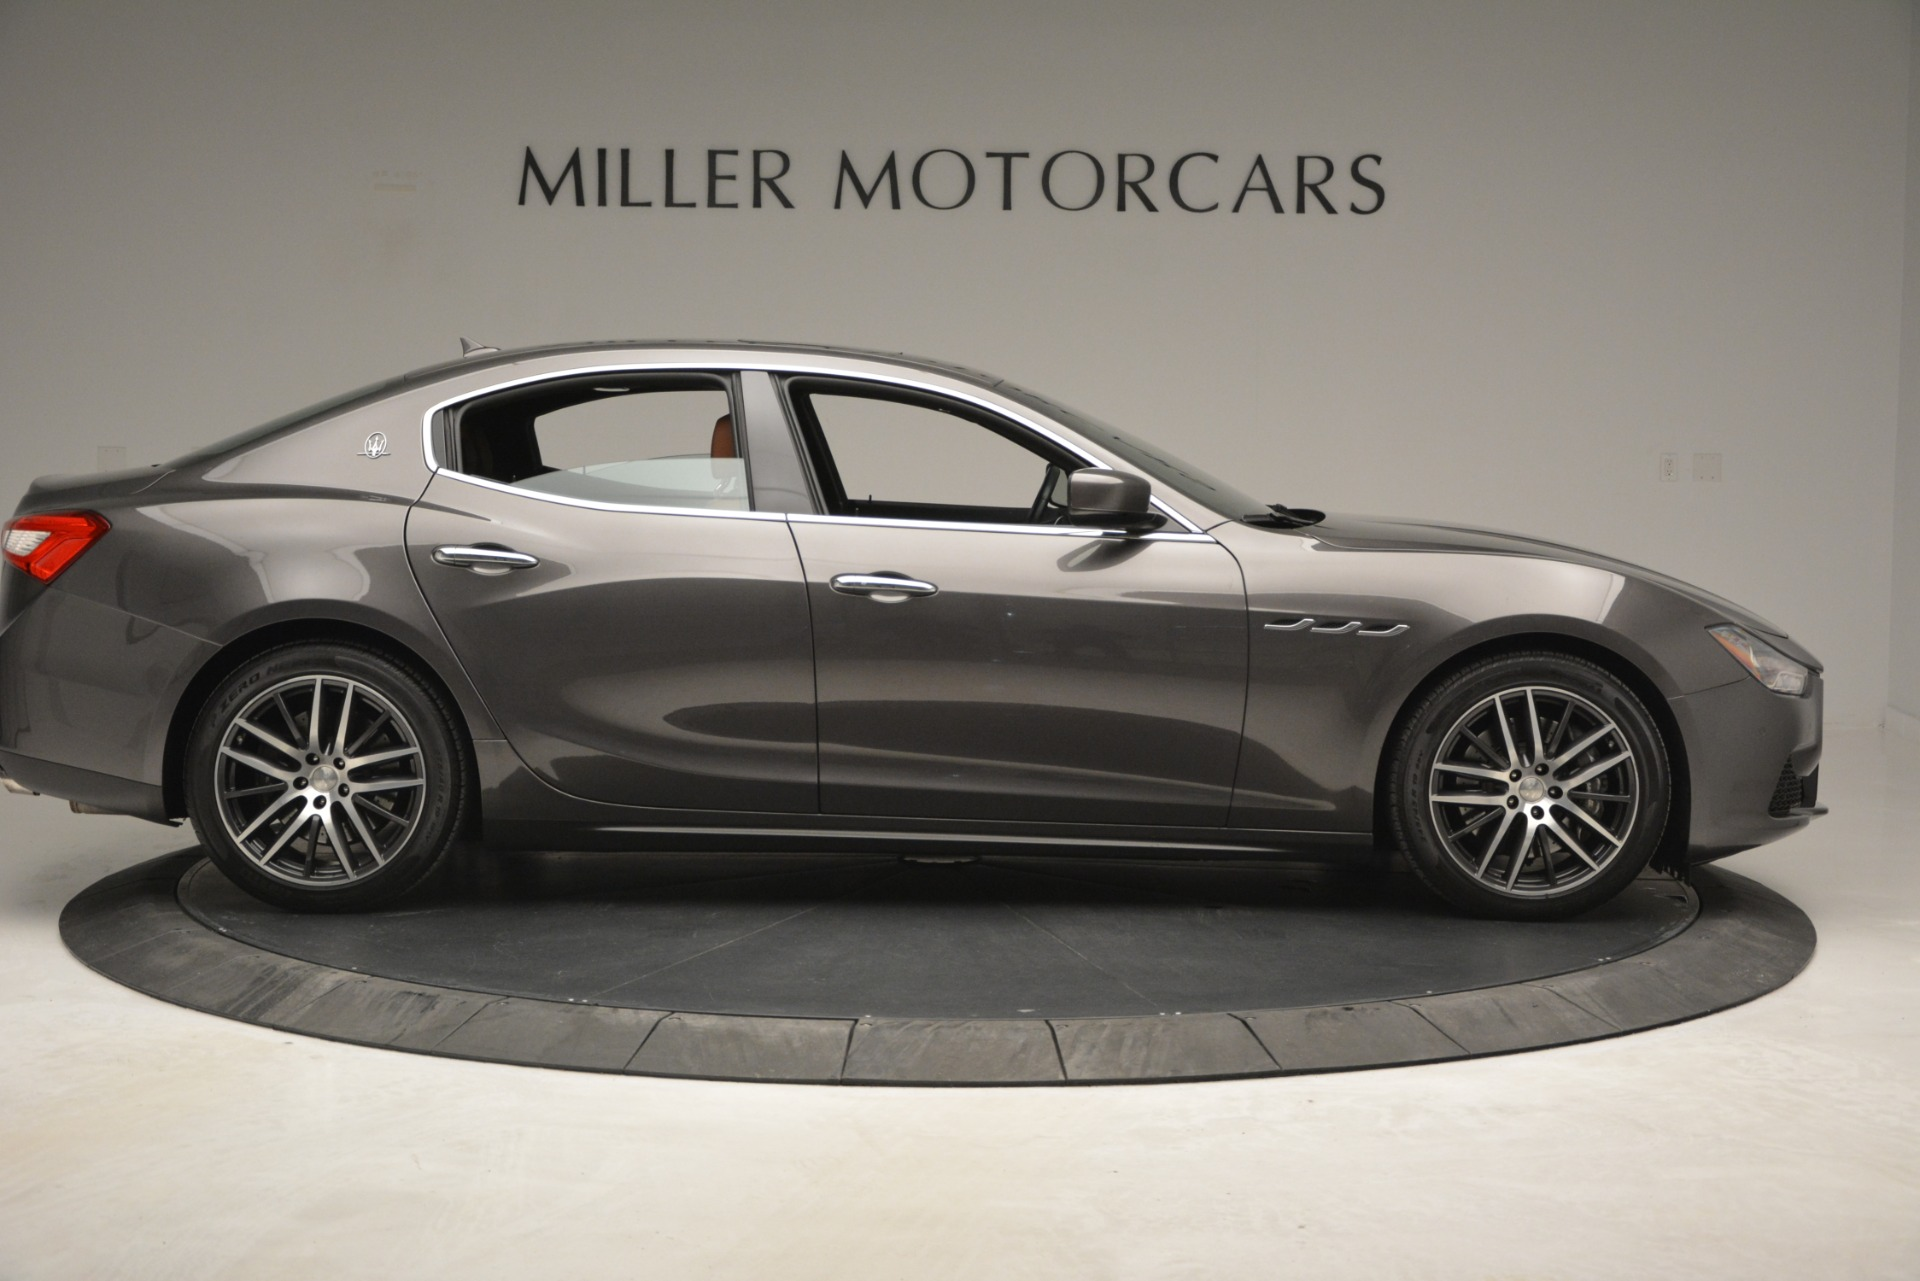 Used 2015 Maserati Ghibli S Q4 For Sale In Greenwich, CT 2941_p10